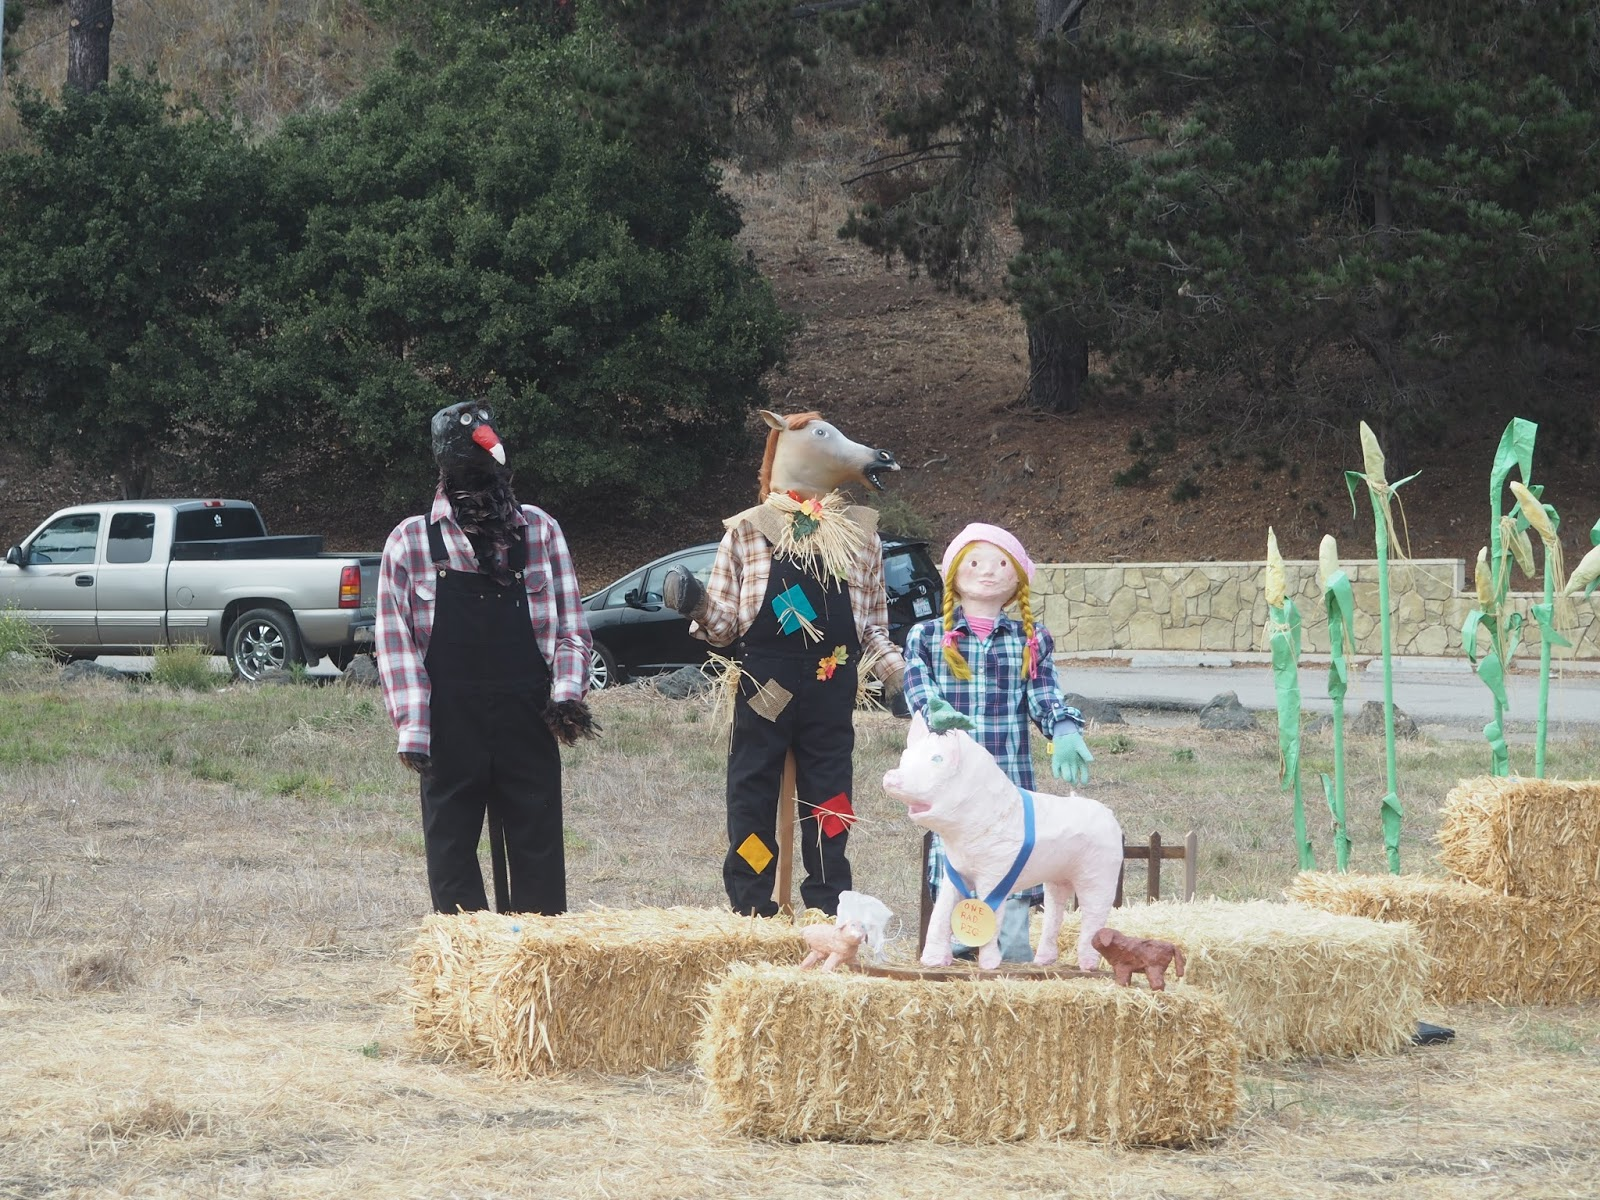 Scary scarecrows